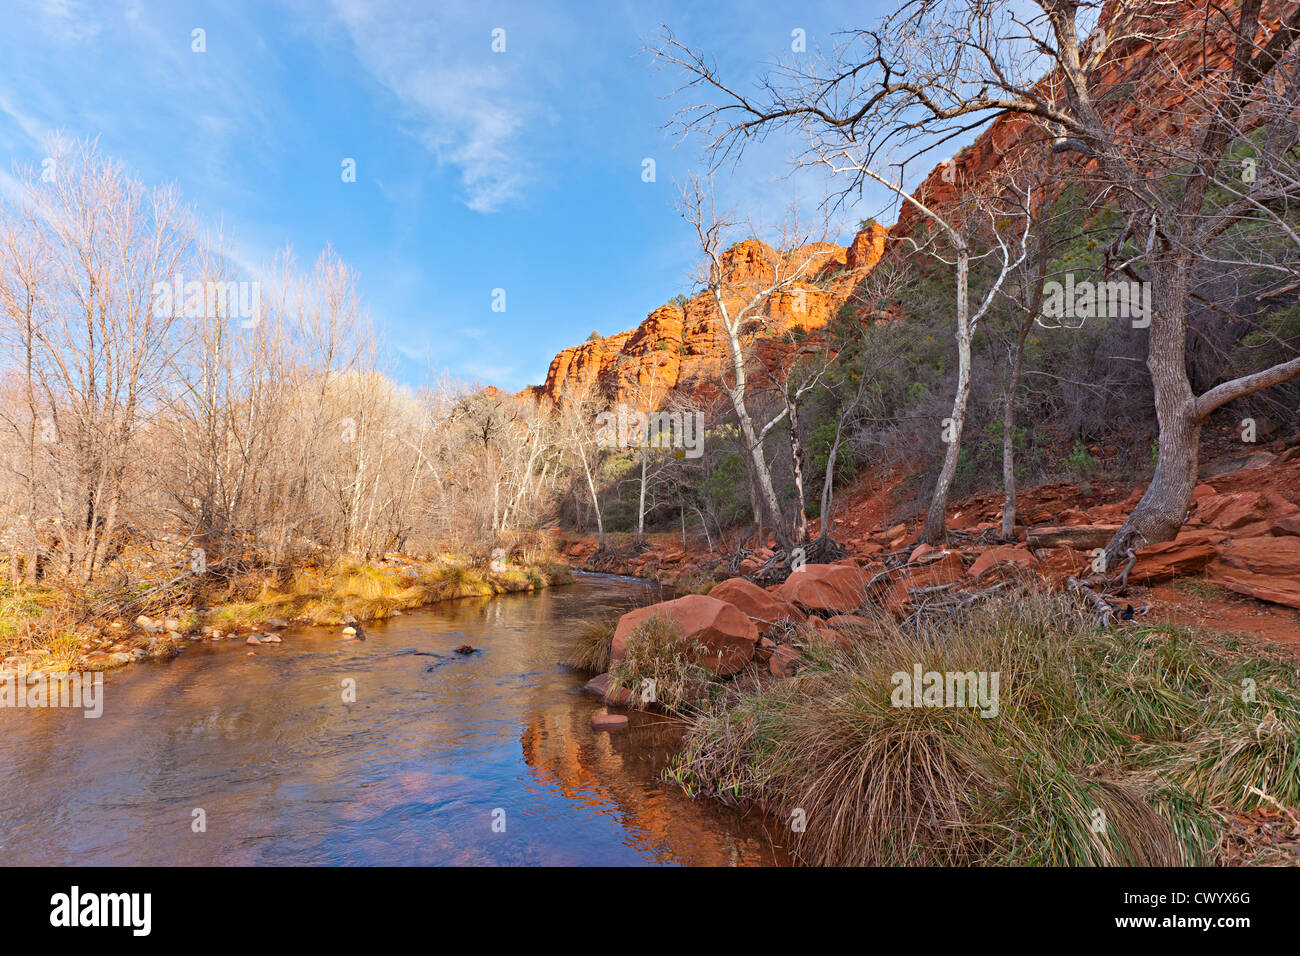 Sedona Arizona USA Stockbild